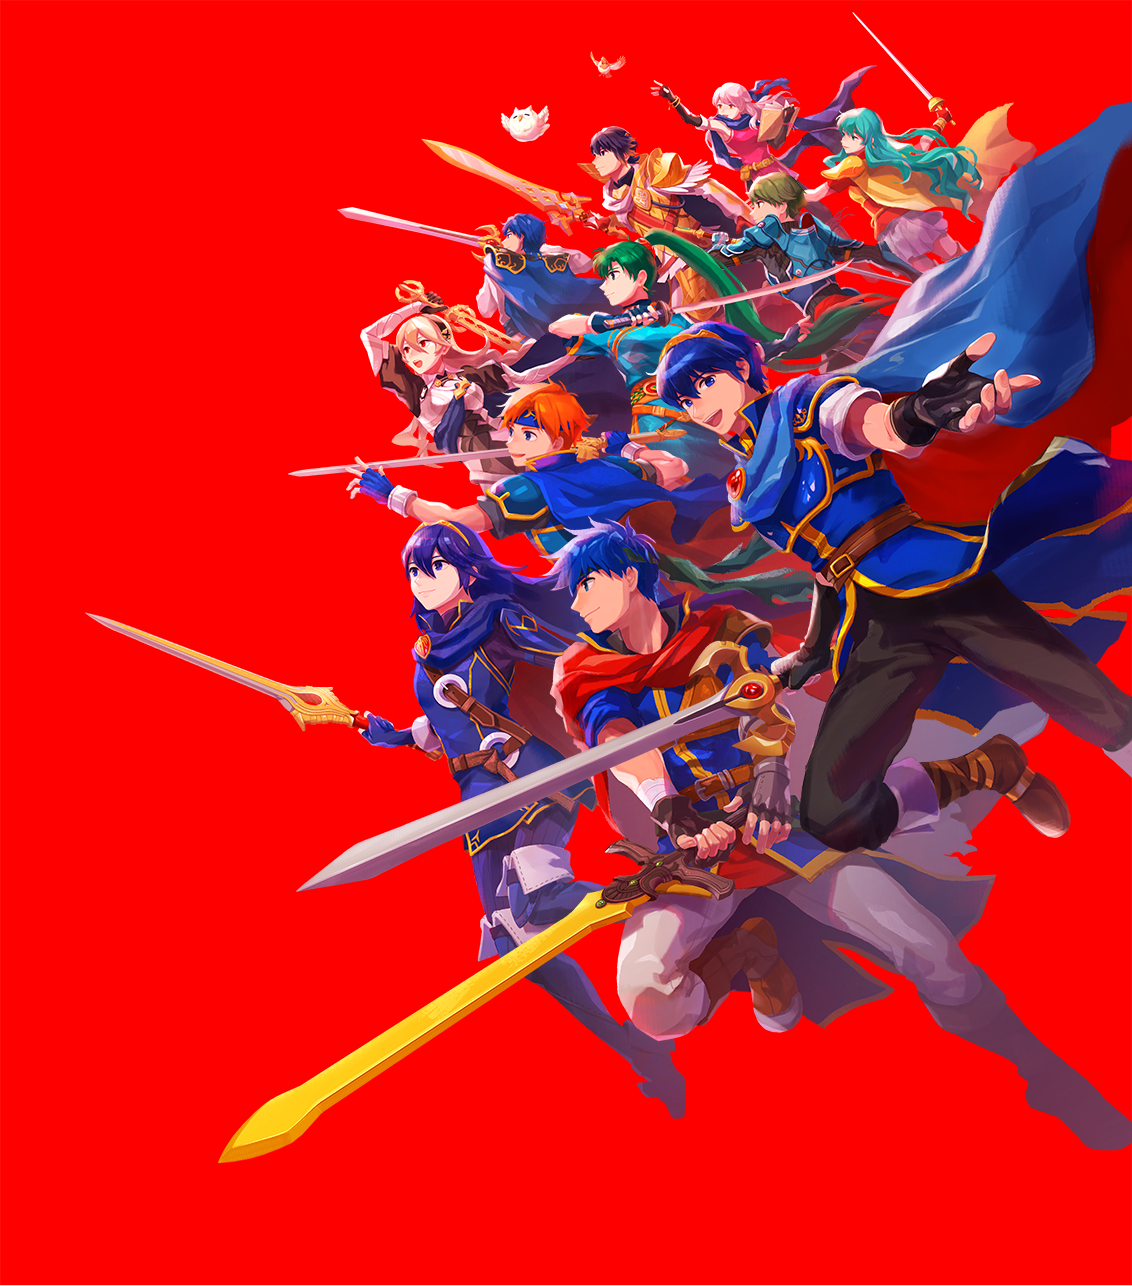 main visual expo fire emblem red background.png